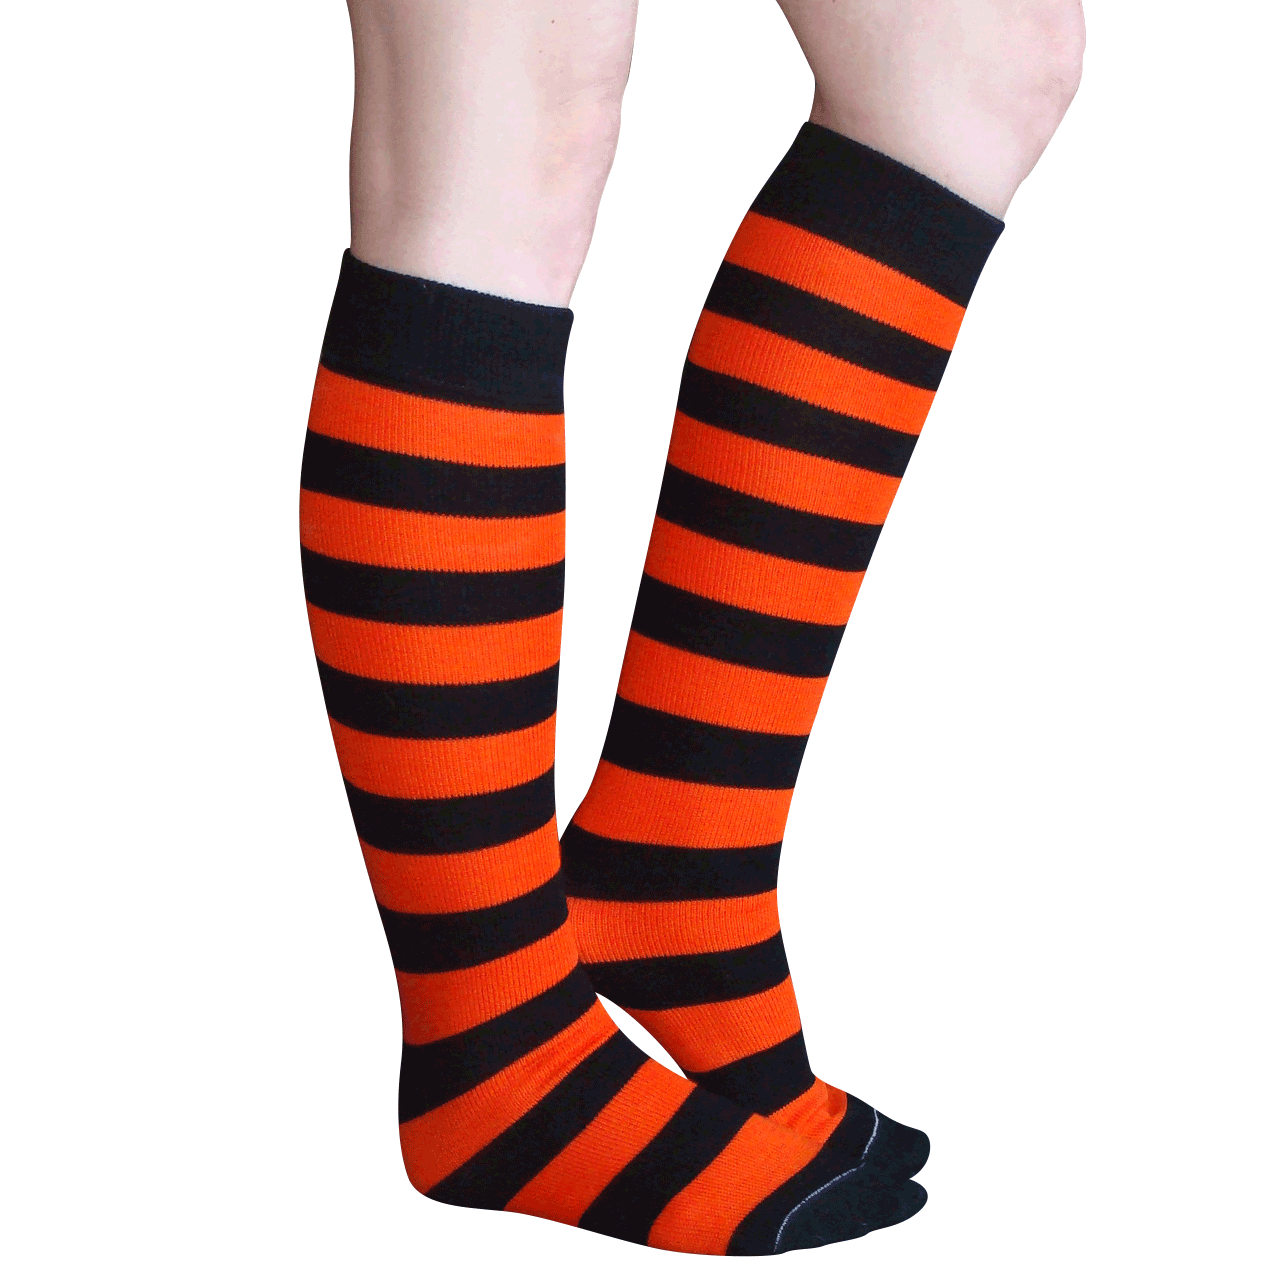 The black and orange stripes on our quality socks create a striking contrast and a look that is ideal for brightening up a simple black outfit or going the extra mile with your Halloween costume. Size: Women's 7 5/5(5).